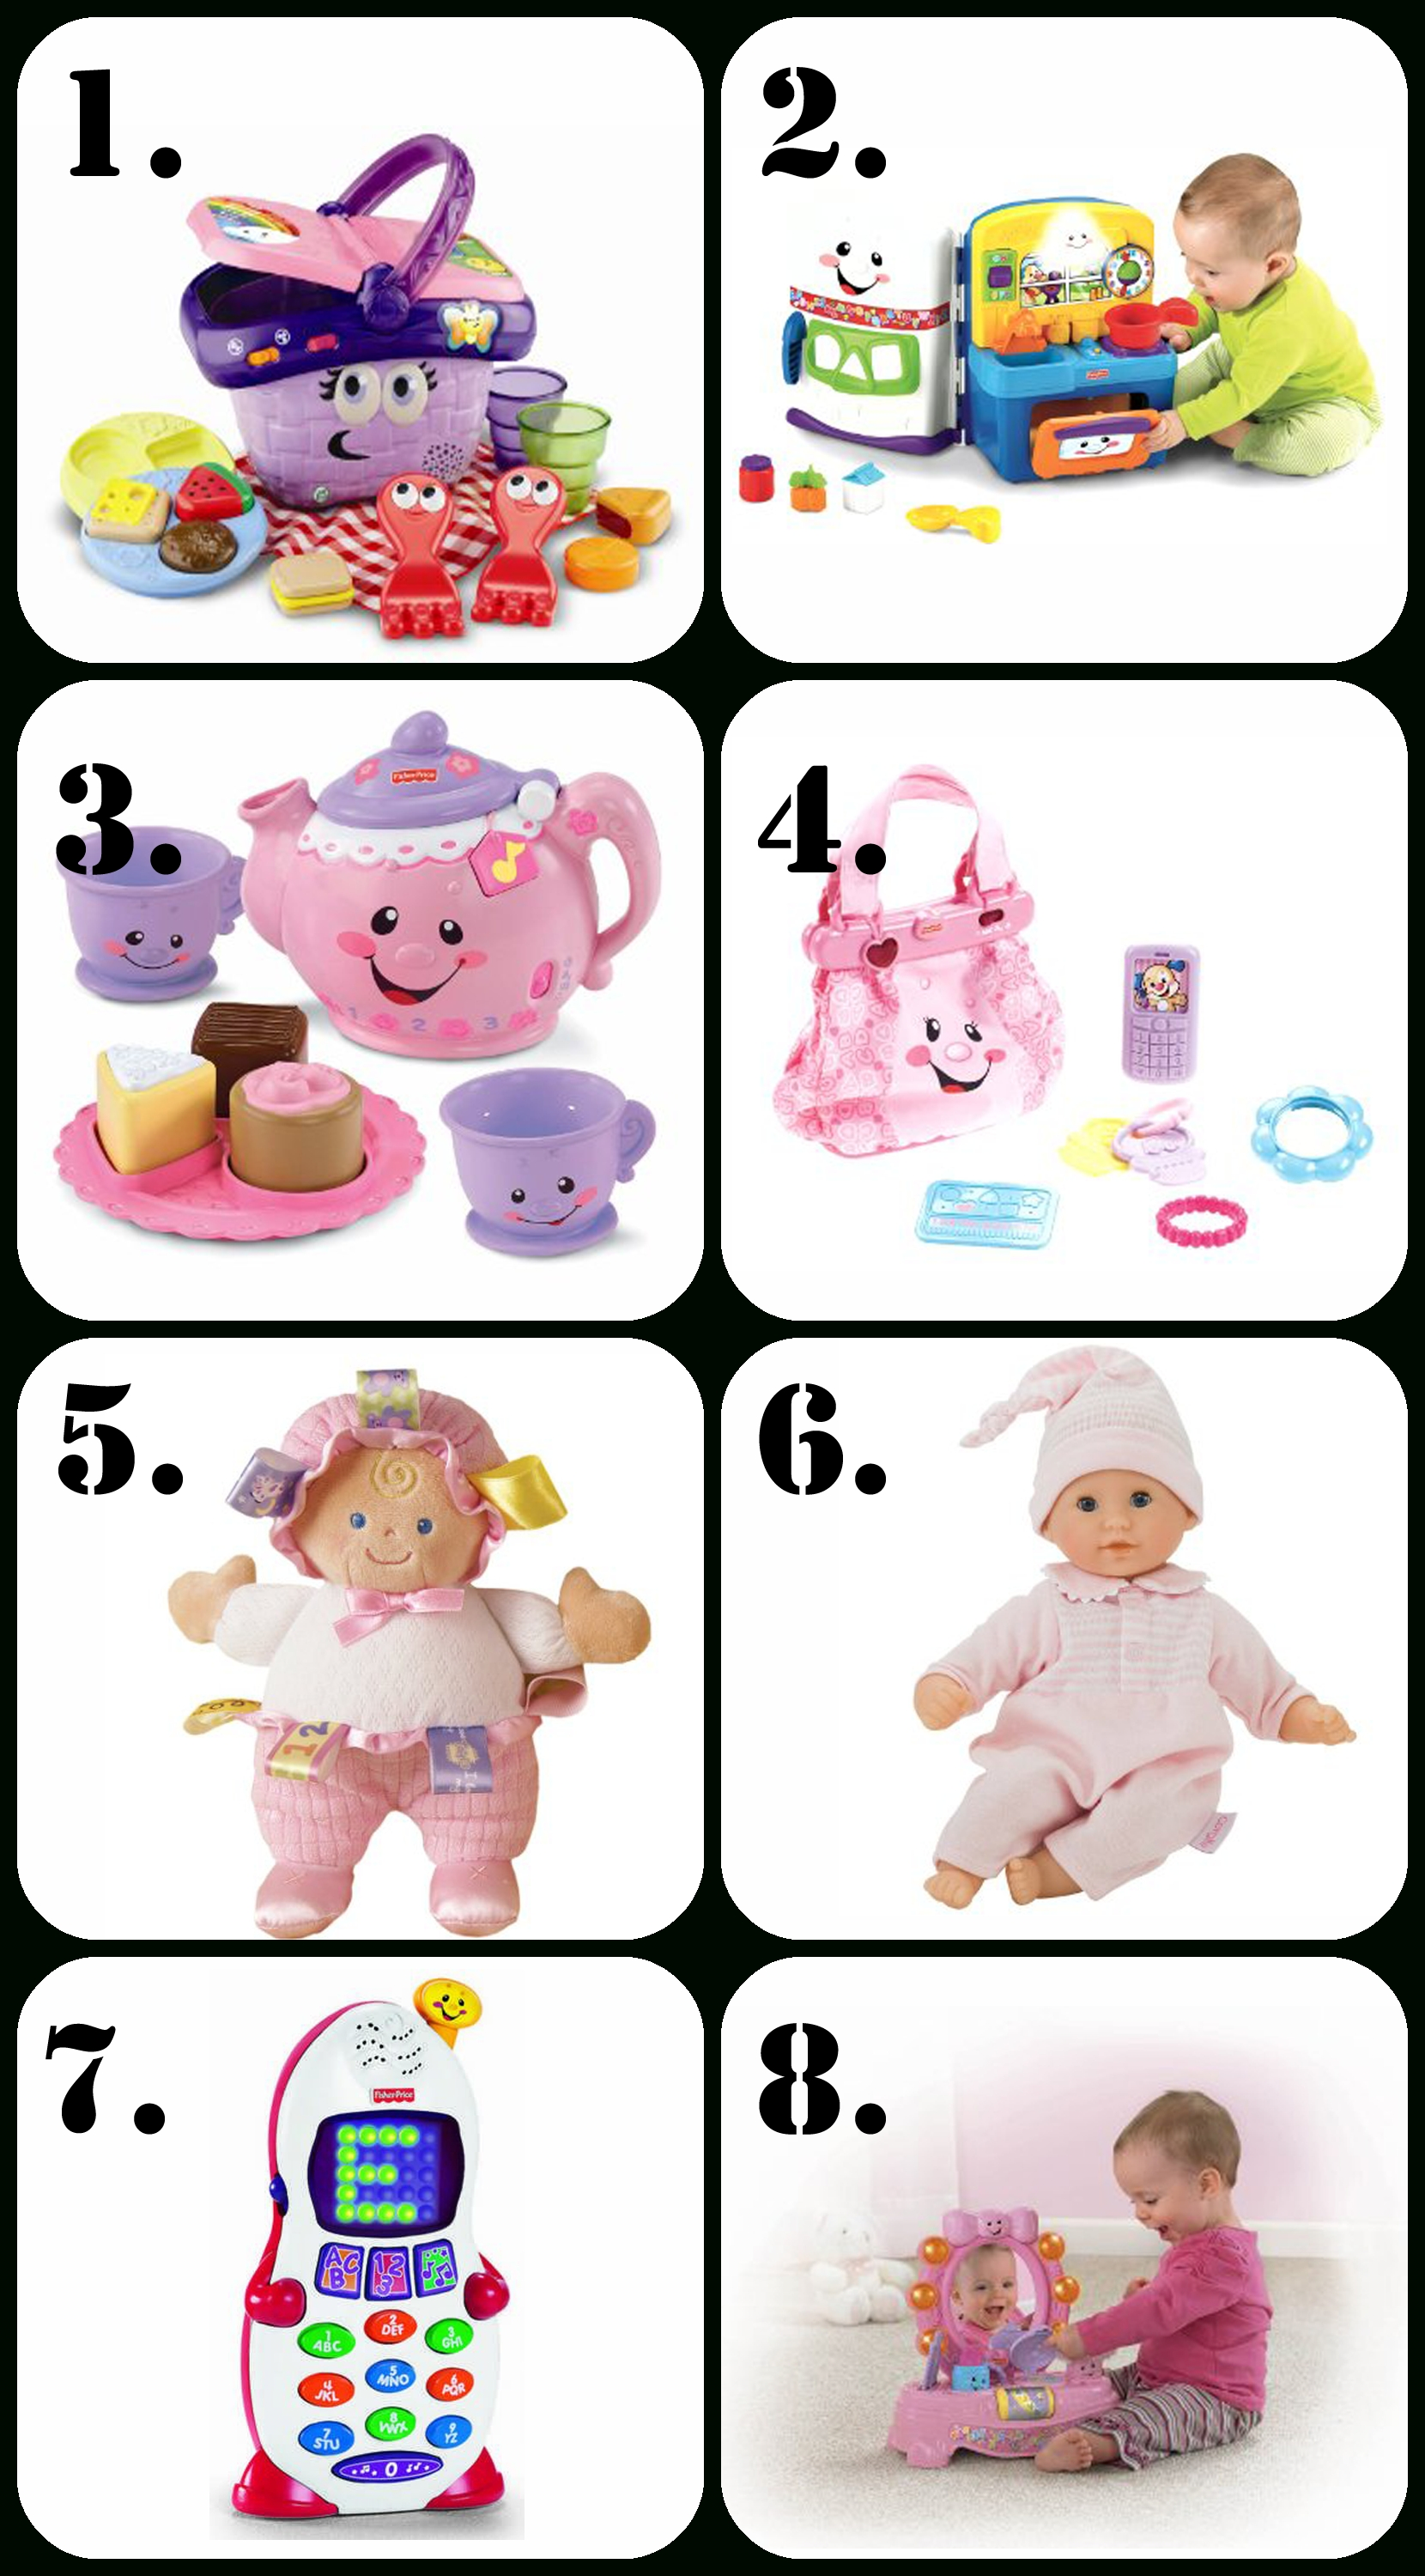 10 Elegant 1 Year Old Gift Ideas Girl best birthday presents for a 1 year old creative home family 6 2021